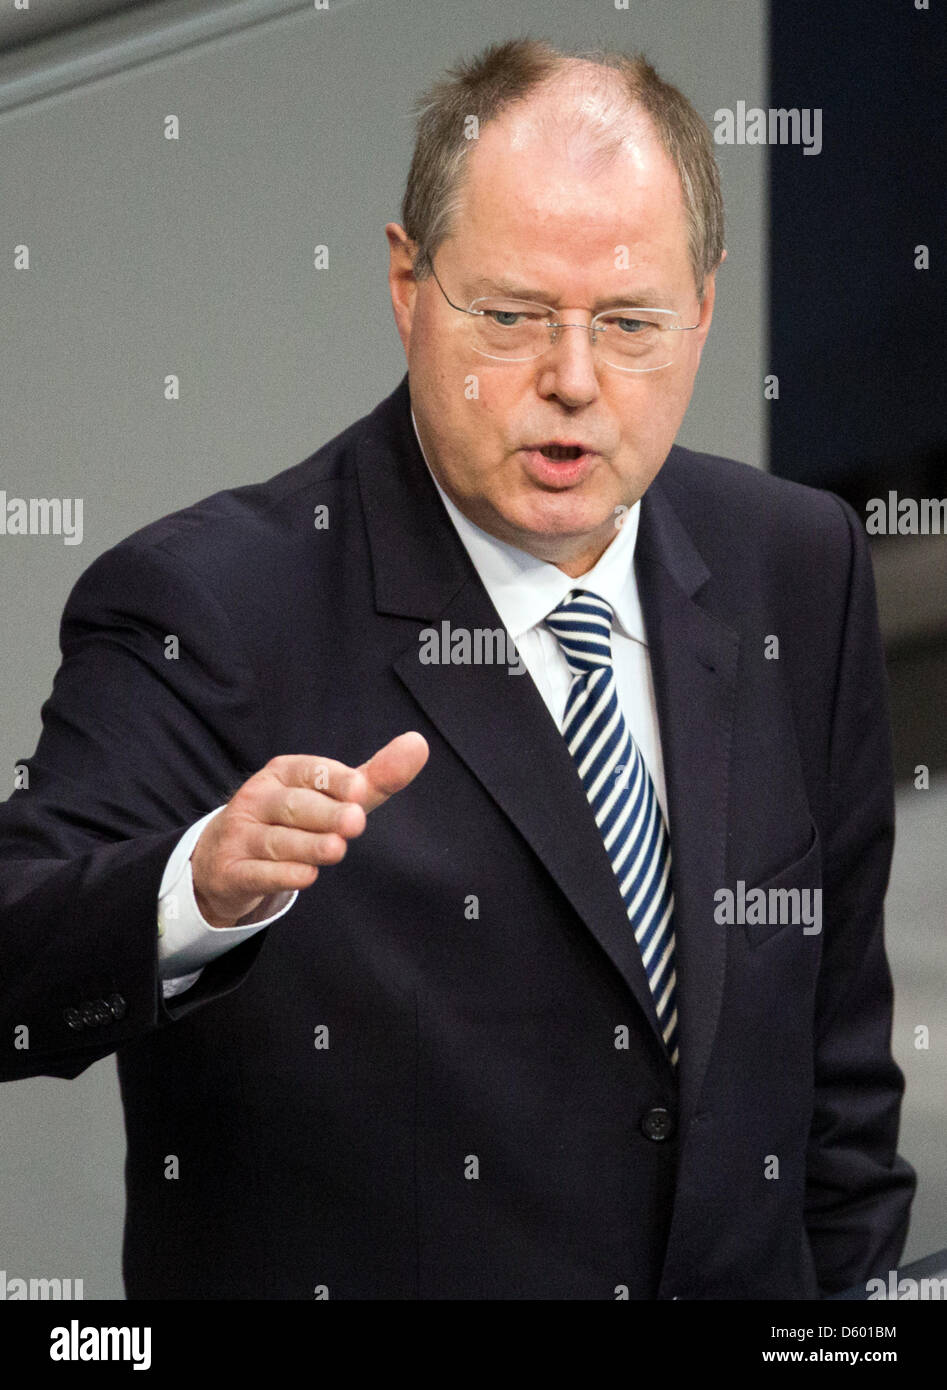 Designated chancellor candidate of the SPD party, Peer Steinbrueck, speaks at the German parliament (Bundestag) - Stock Image